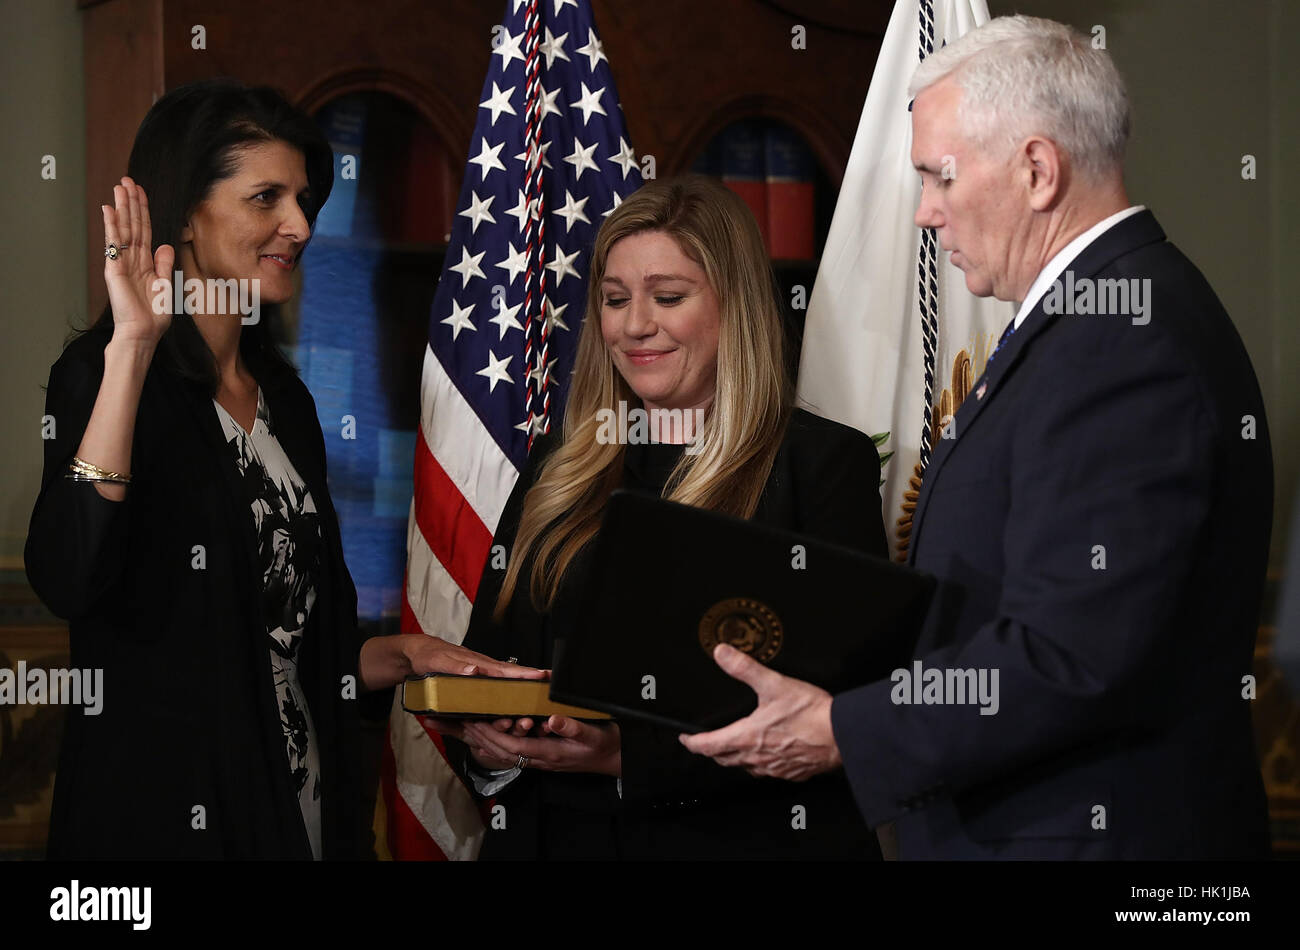 Washington DC, USA. 25th January 2017. United States Vice President Mike Pence swears in Nikki Haley (L) as the - Stock Image